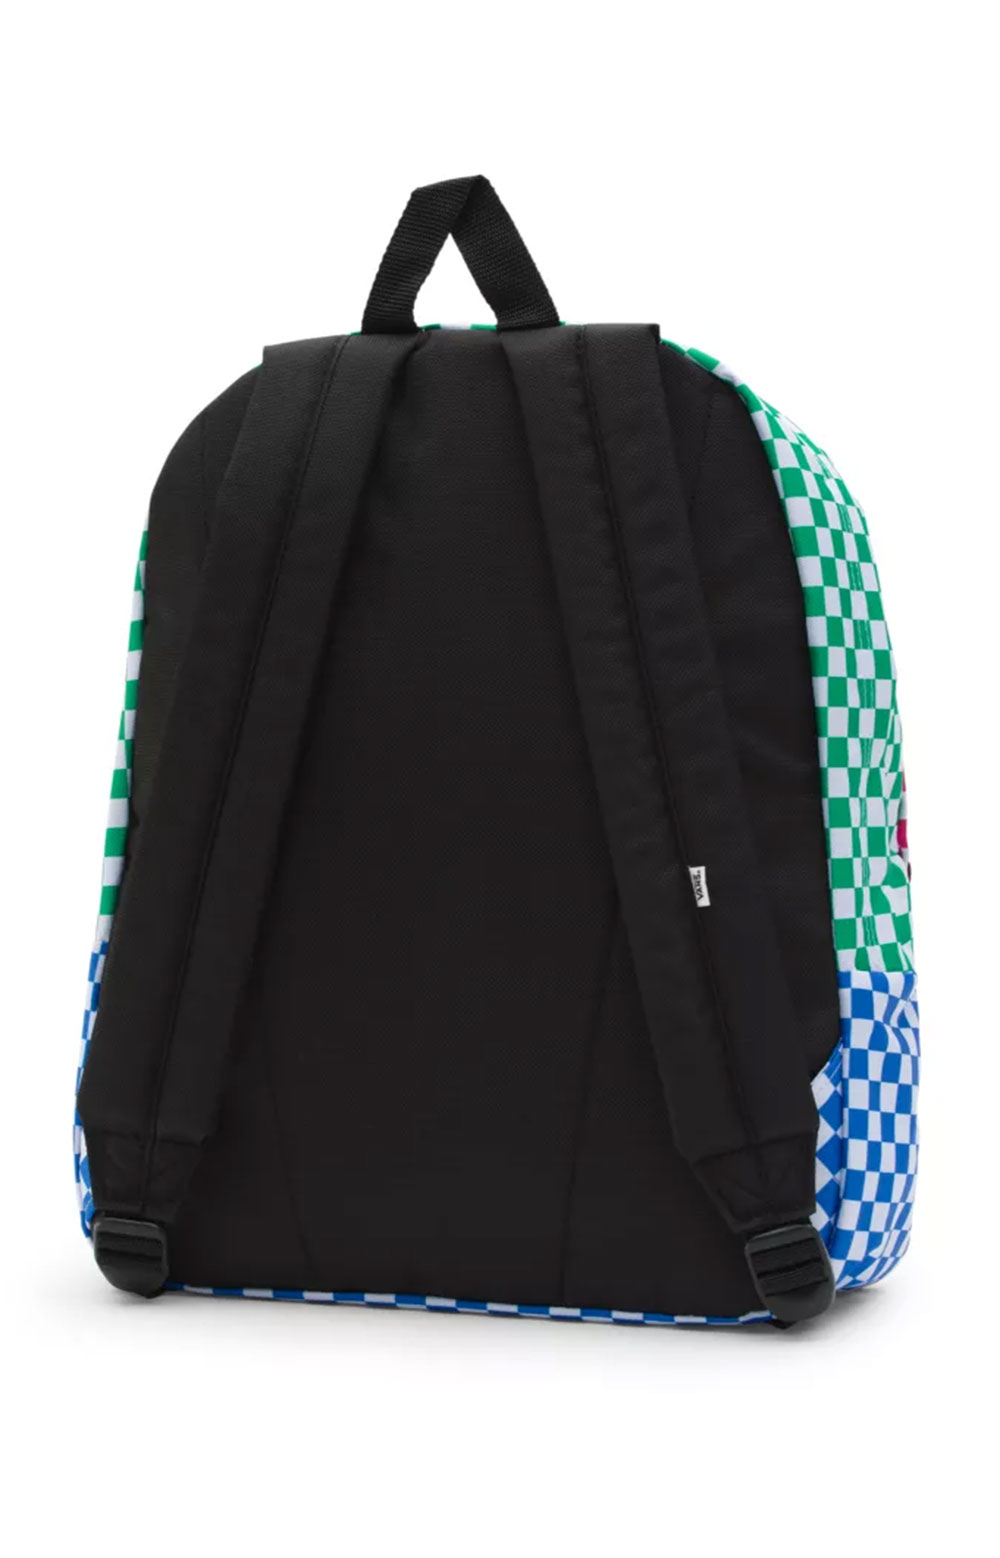 Realm Backpack - Checker Block  3